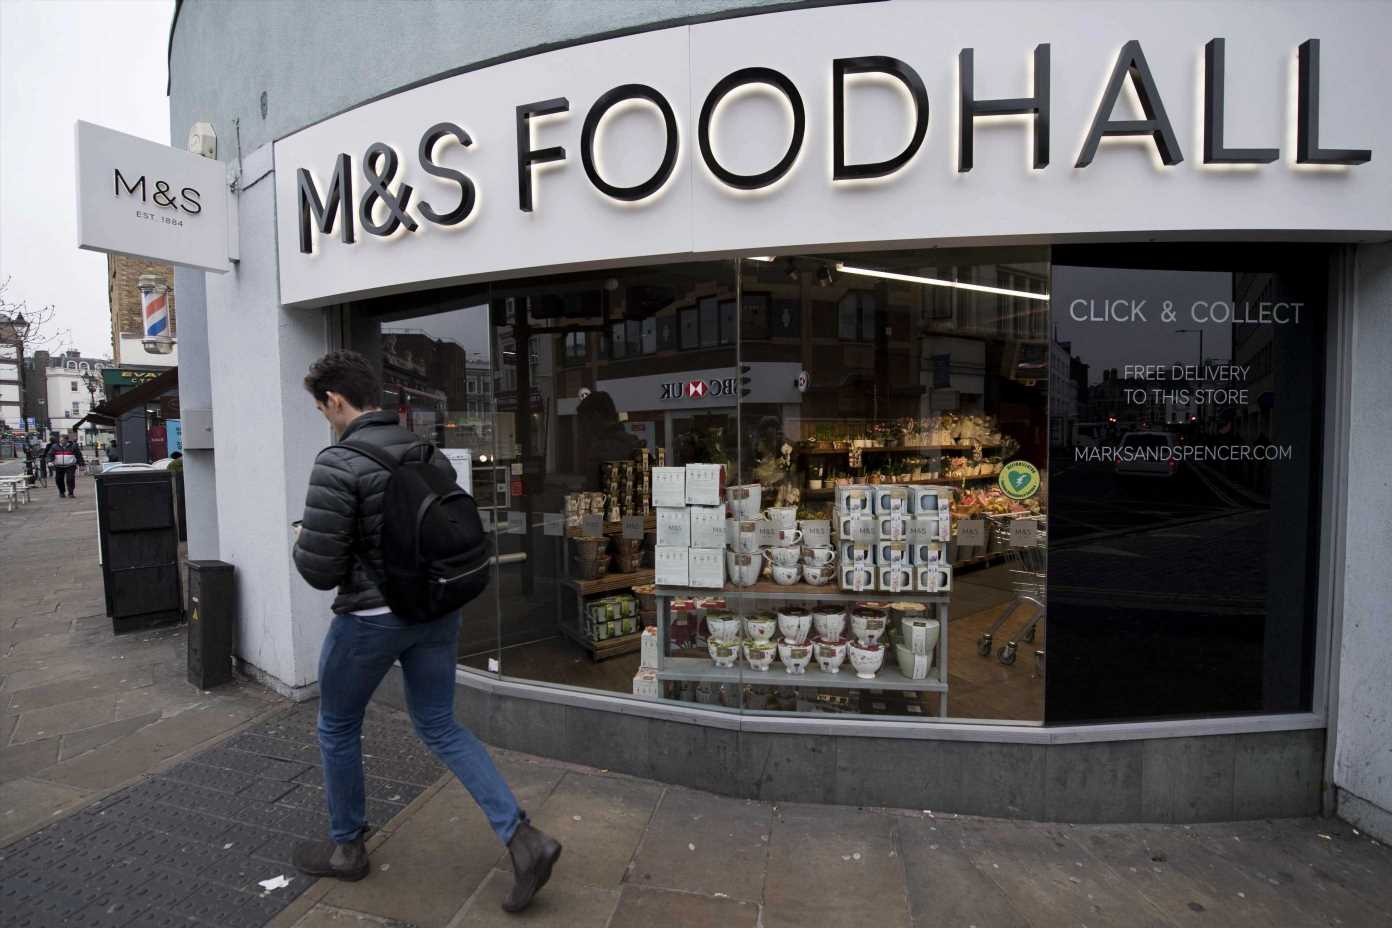 Marks and Spencer 2019 opening times – bank holiday Monday supermarket opening hours